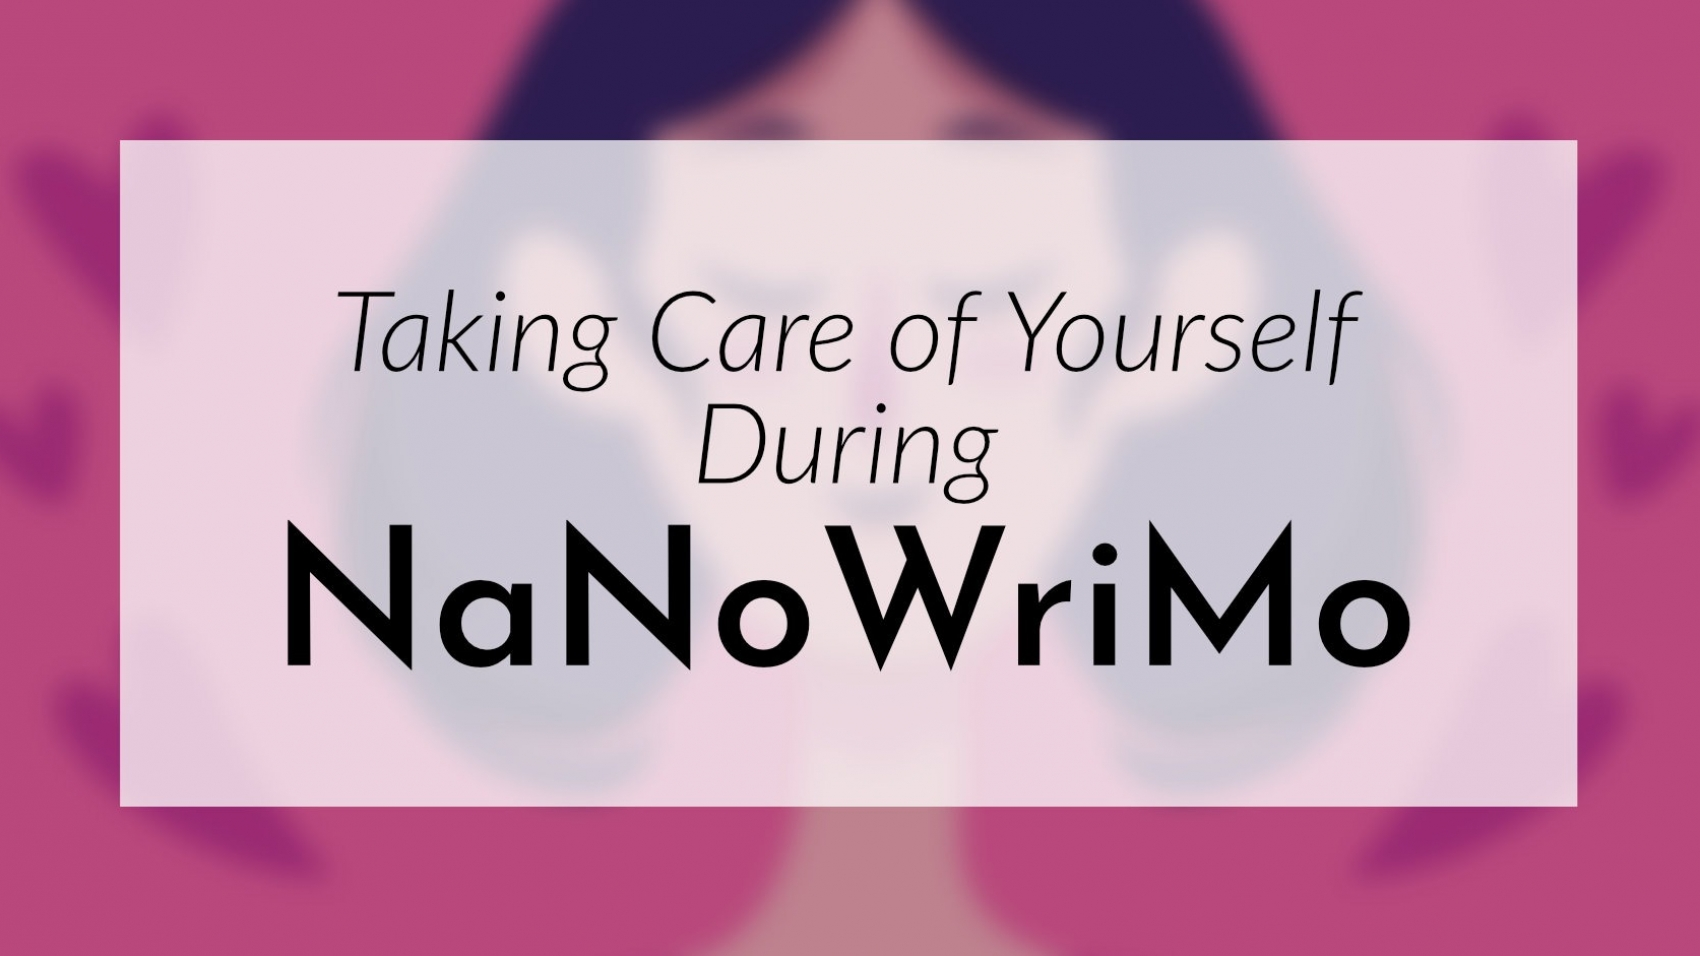 Banner: Taking care of yourself during NaNoWriMo